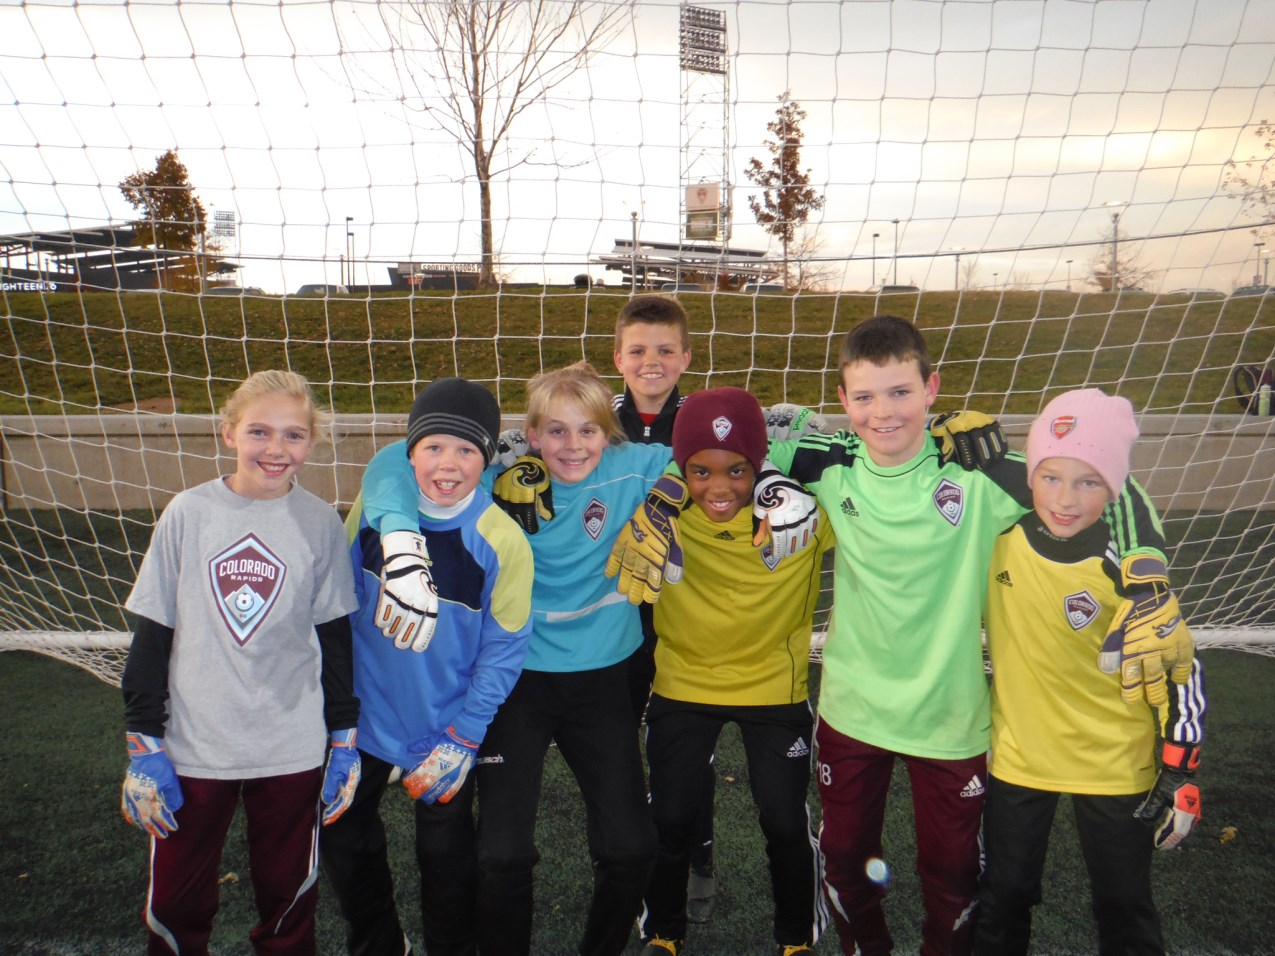 Acknowledgements Thanks to all of the U11-U12 goalkeepers from the Colorado Rapids Academy and Burgundy teams.